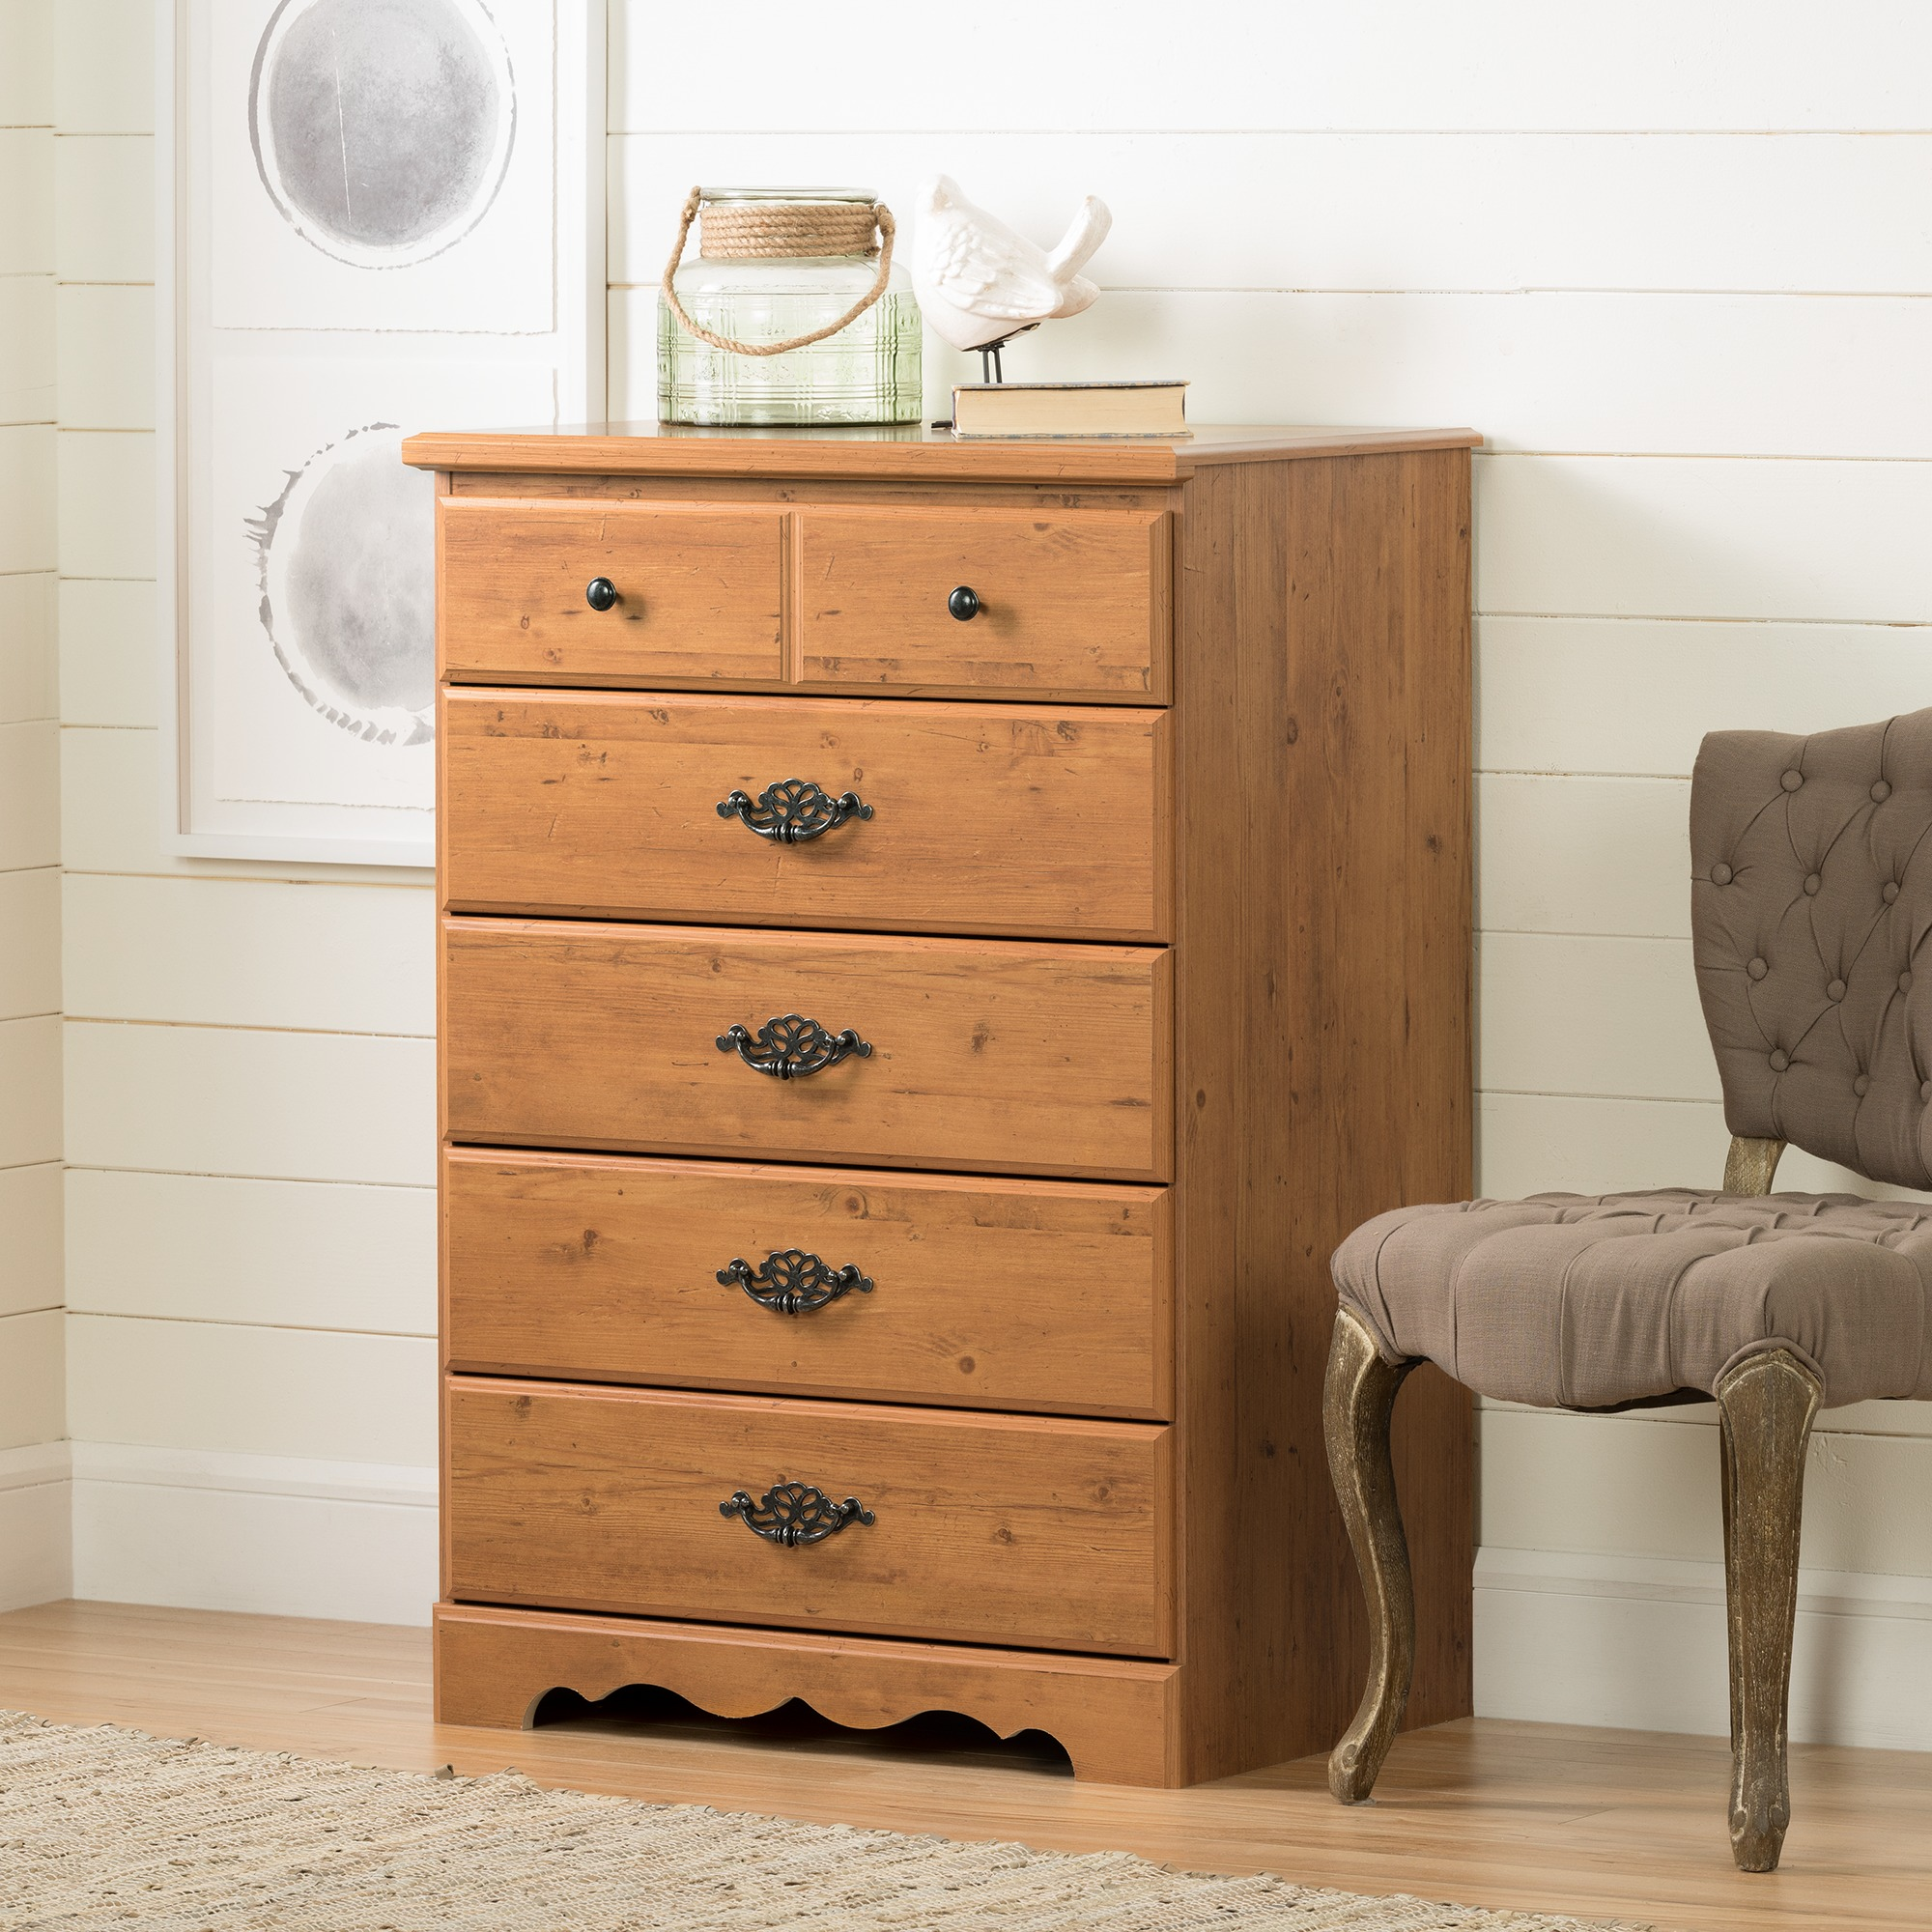 South Shore Prairie 5-Drawer Dresser, Country Pine